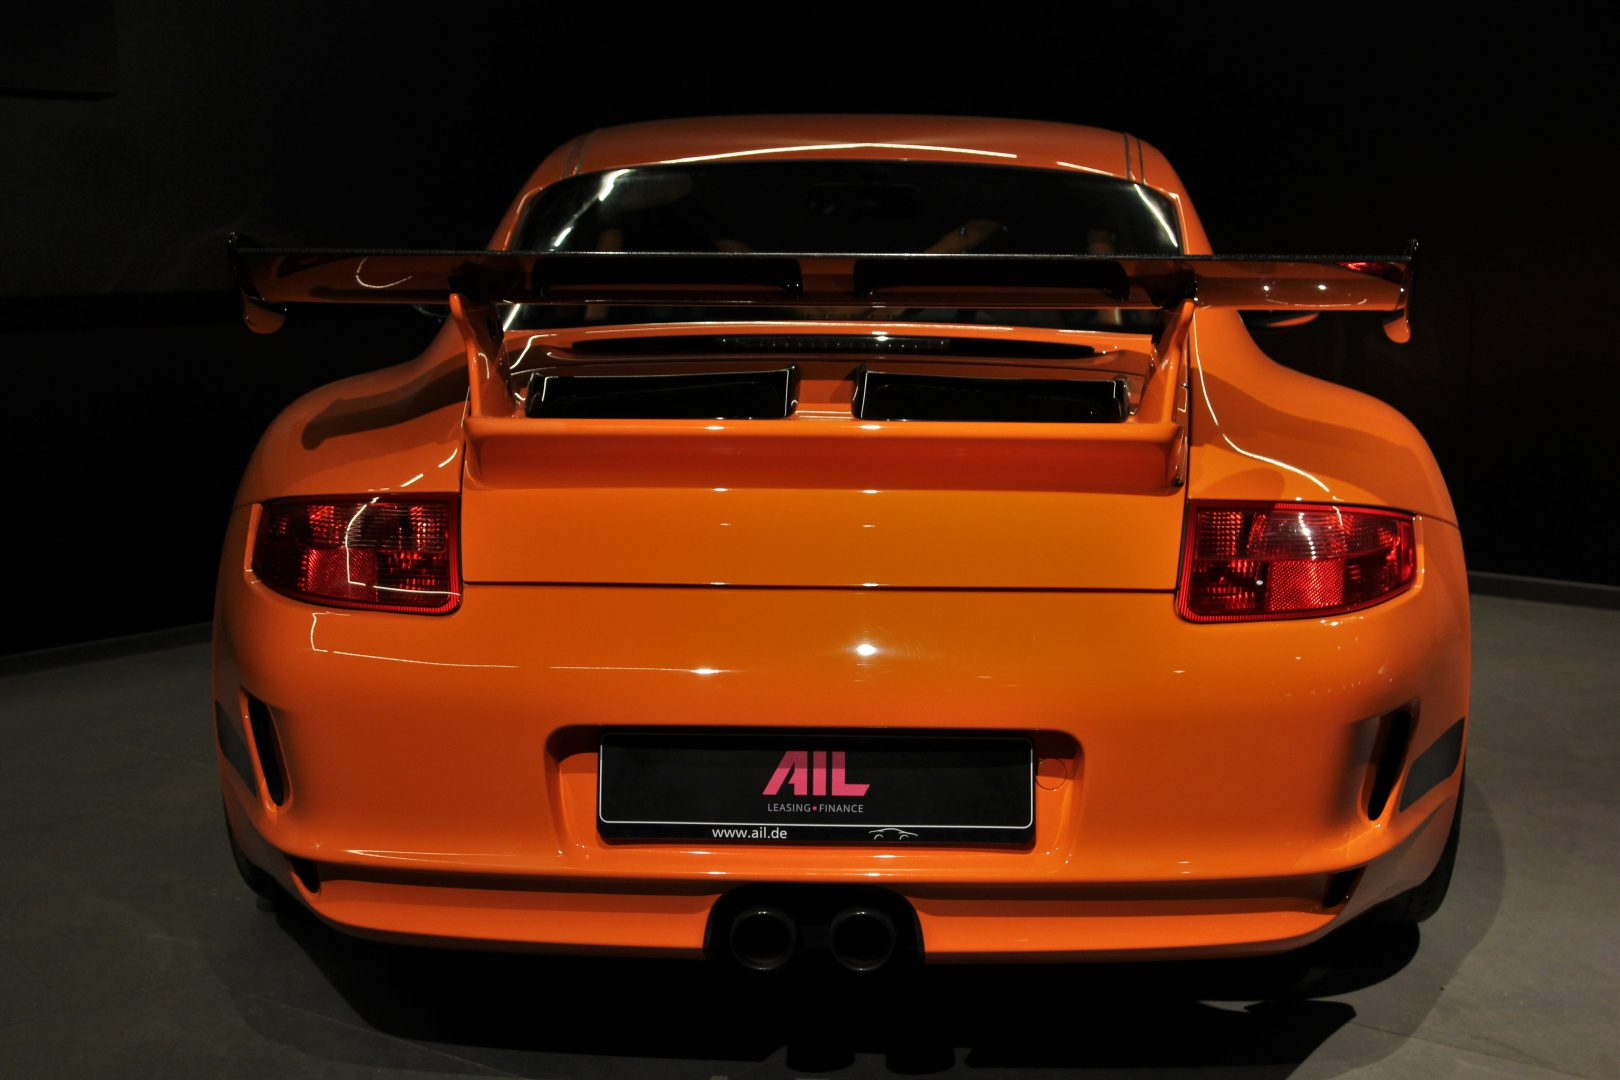 AIL Porsche 997 GT3 RS Club Sport Paket Orange 7